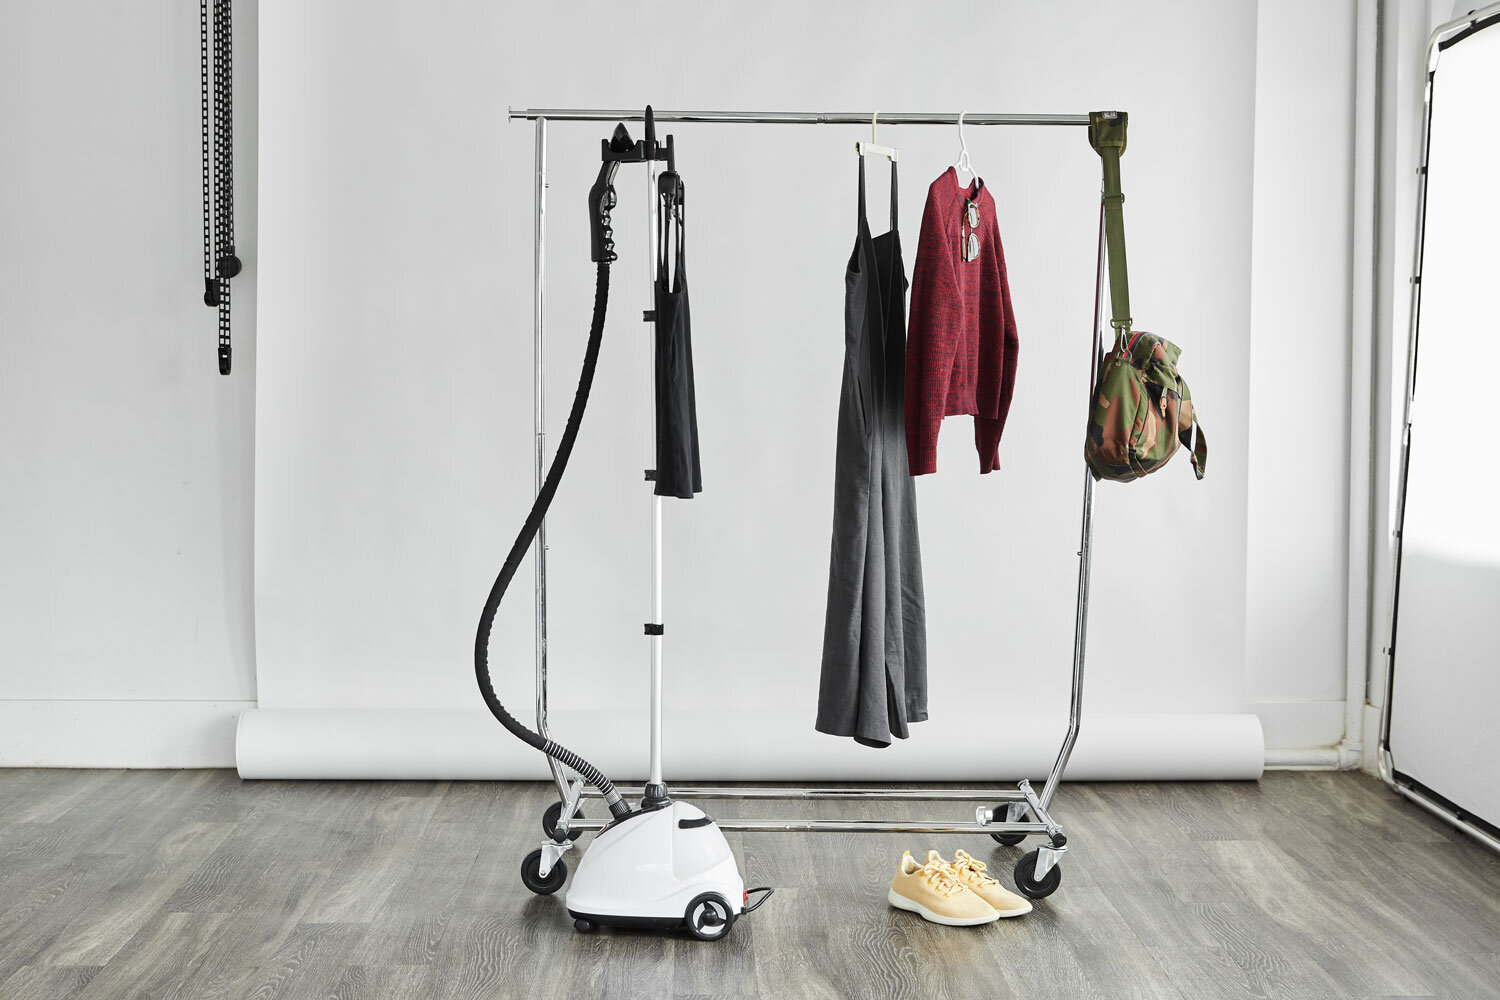 Both of our studios have a steamer and rolling rack included with your rental.